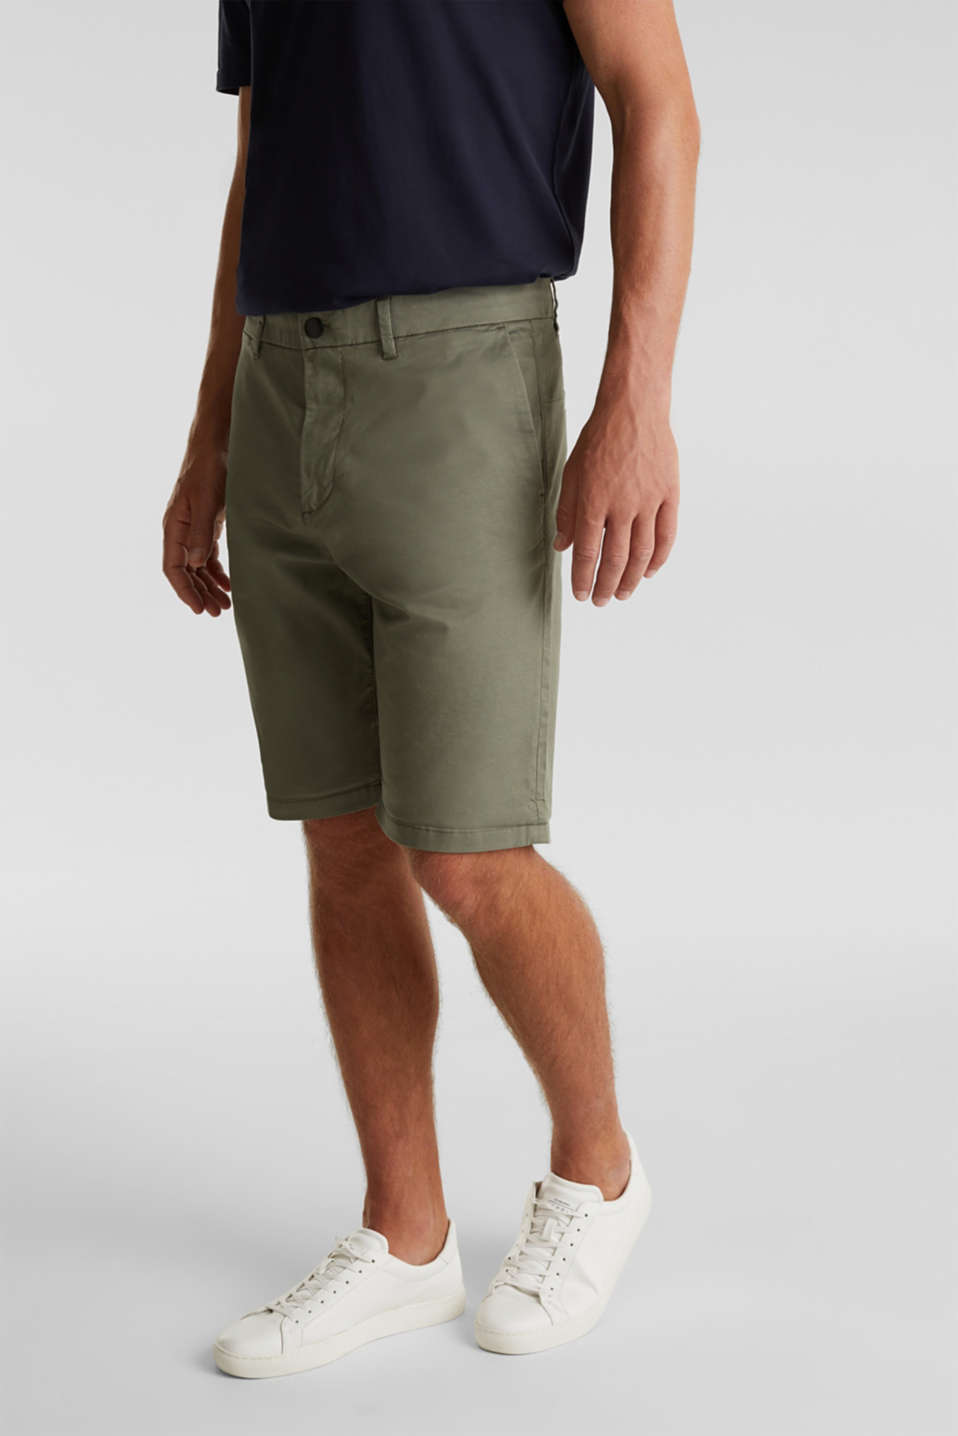 Shorts with COOLMAX®, organic cotton, LIGHT KHAKI, detail image number 0